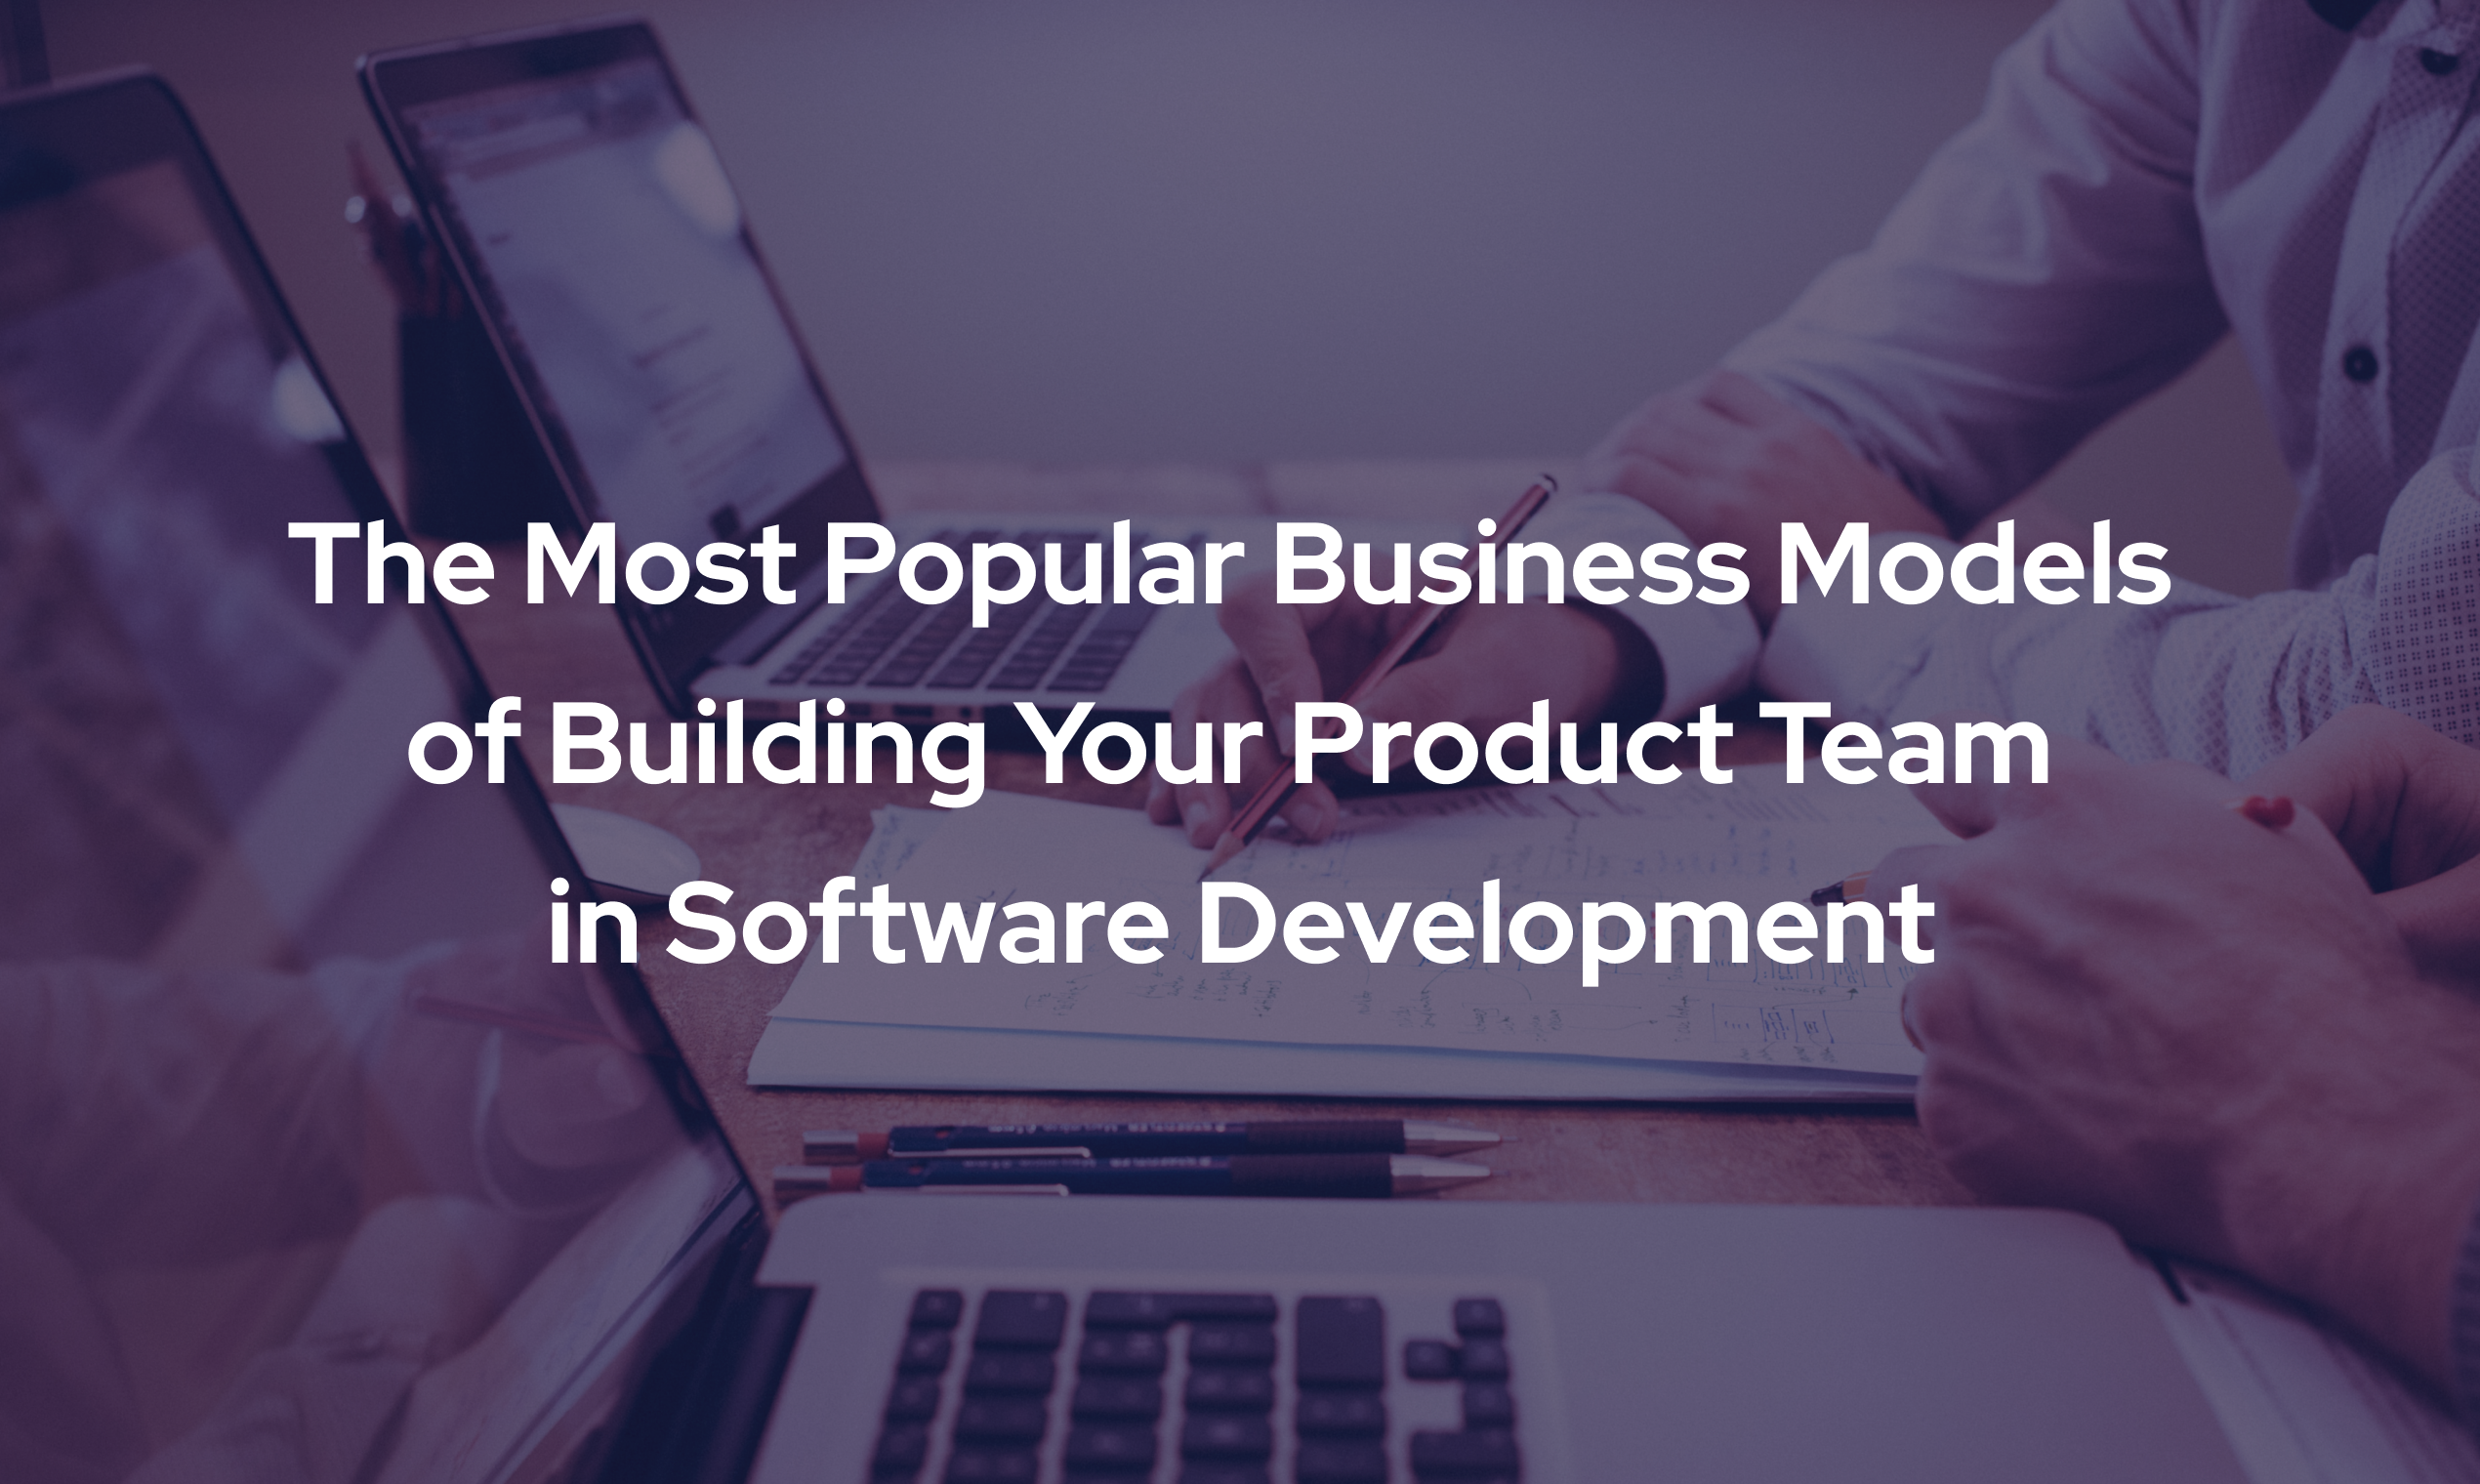 Video: the most popular business models of building your product team in software development